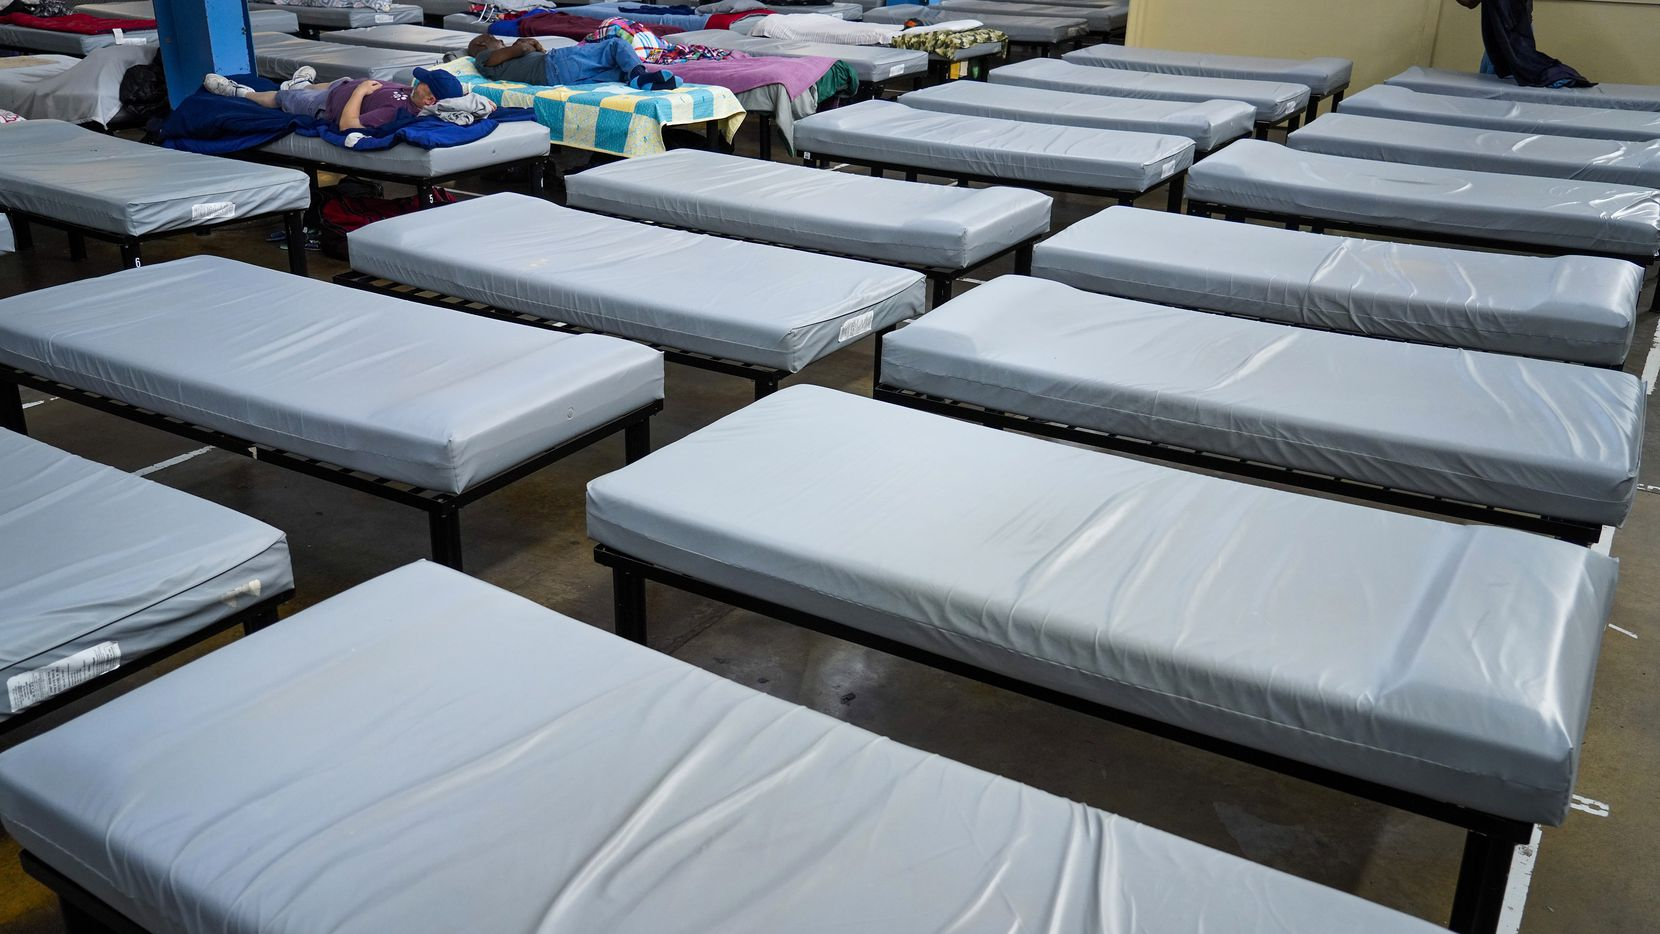 Beds are lined up at Austin Street Center on Wednesday, March 11, 2020, in Dallas.  Shelter providers at Austin Street two days later removed 37 beds, about 10% of its total capacity, to distance guests to prevent the spread of coronavirus.